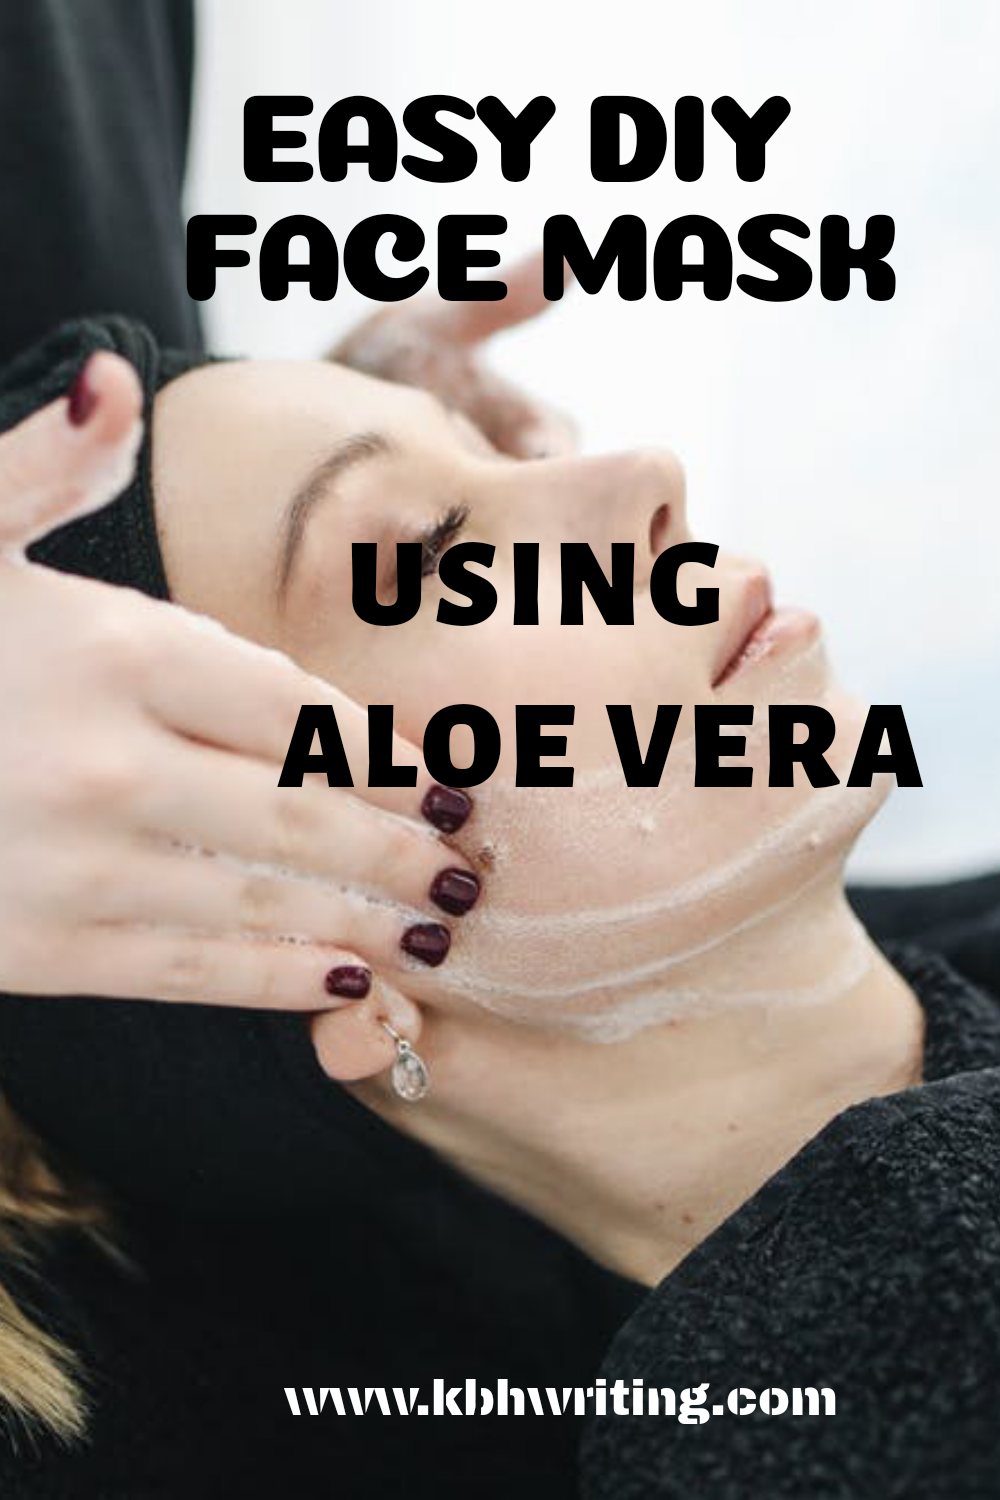 Cheap and effective D.I.Y Face Mask Using Aleo Vera in